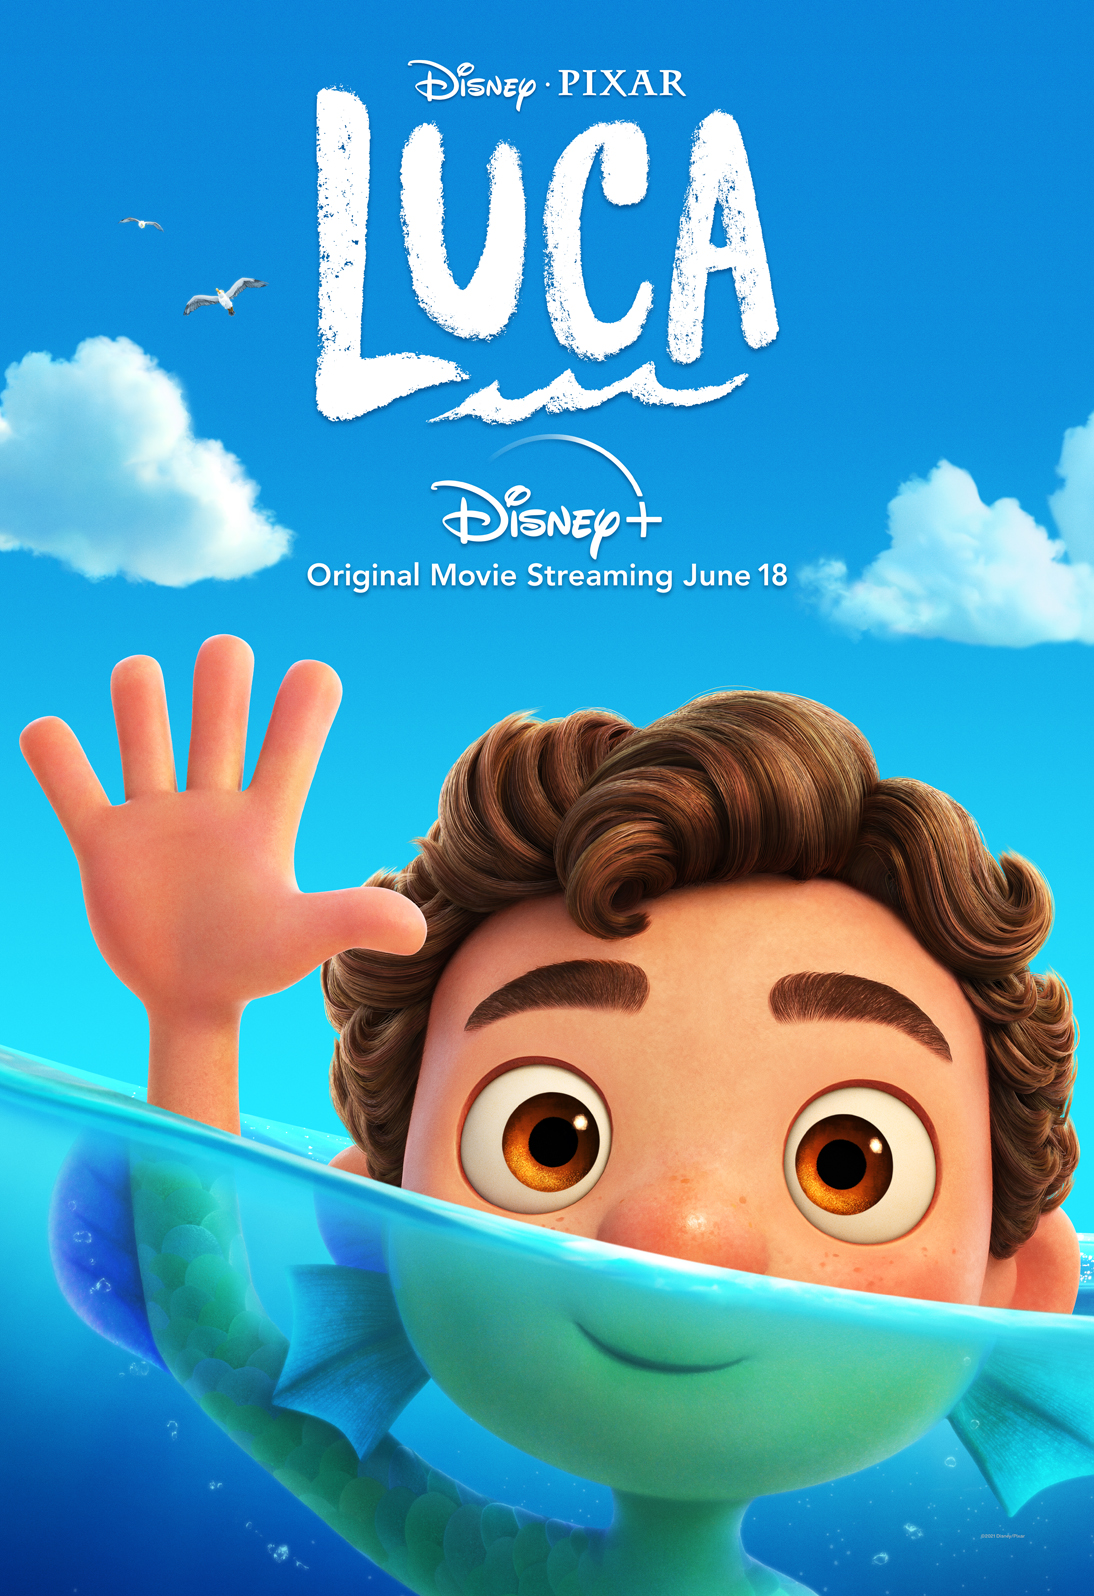 New Clip and Posters from Pixar's 'Luca' - Image 3